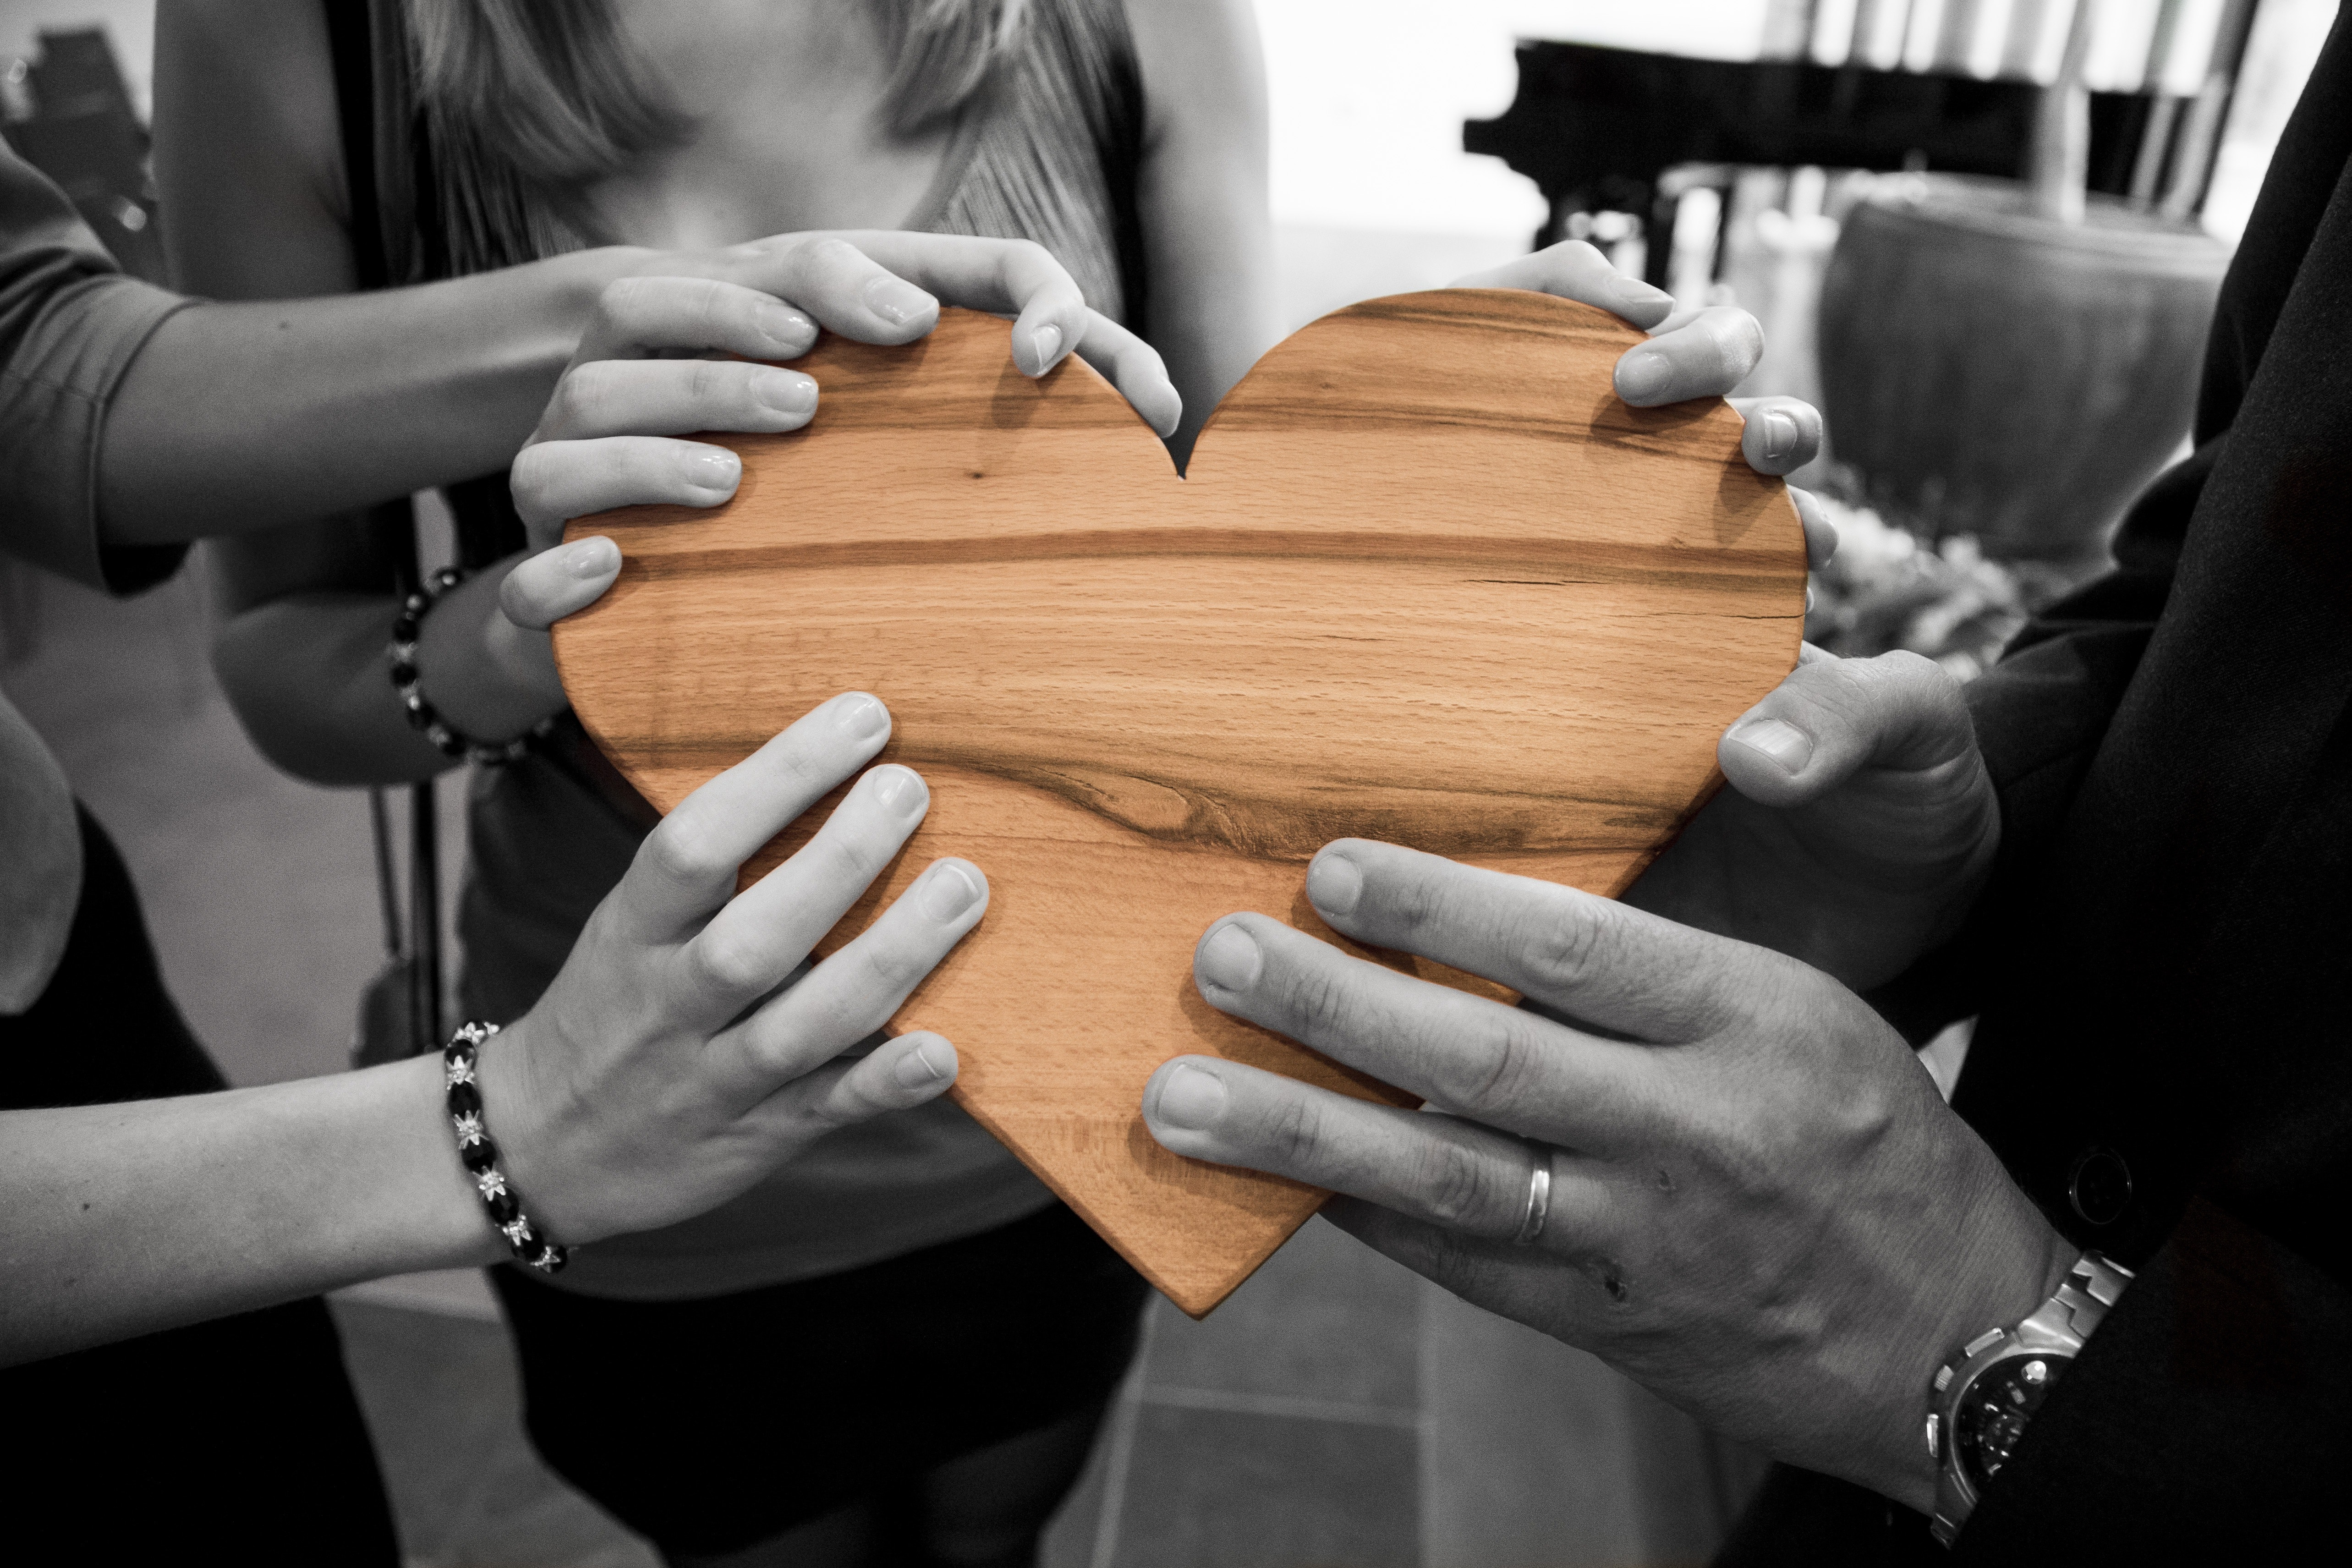 image of several people's hands holding a heart shaped piece of wood